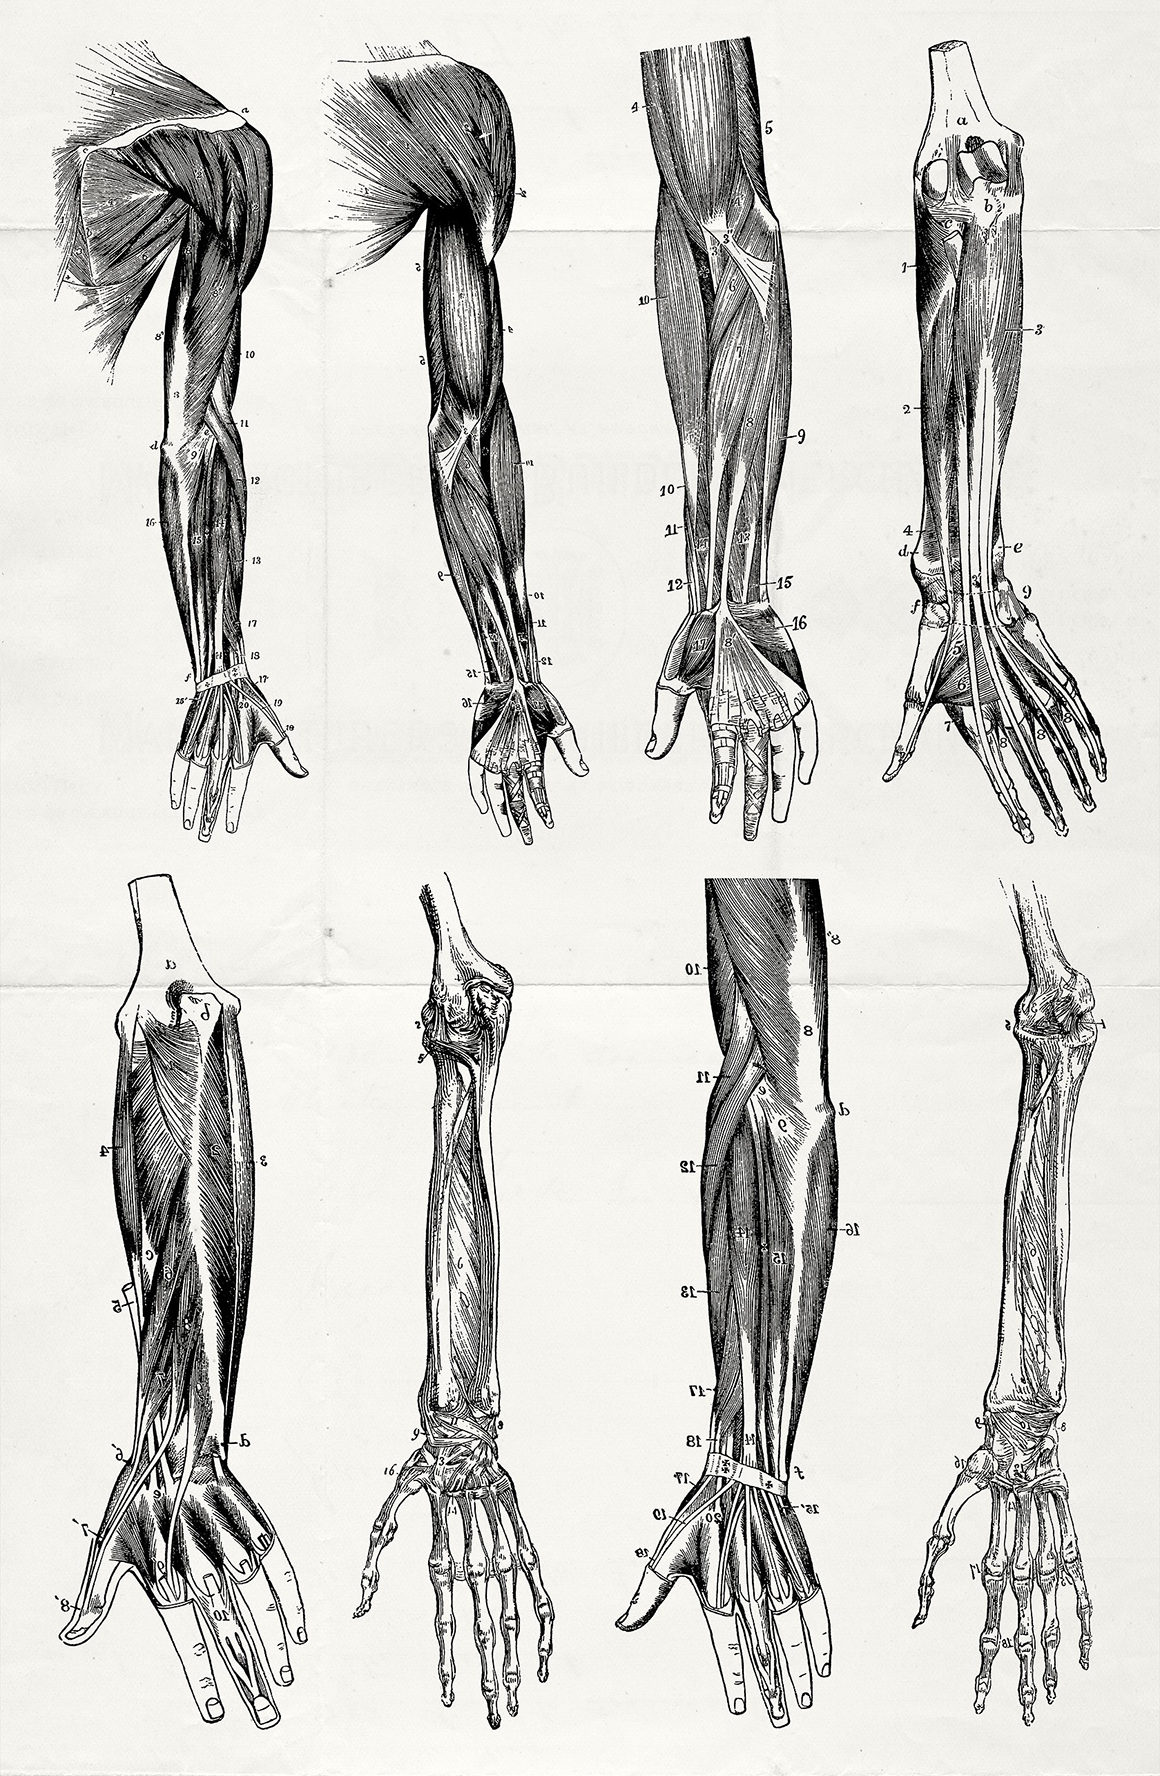 76 Vintage Anatomy Illustrations